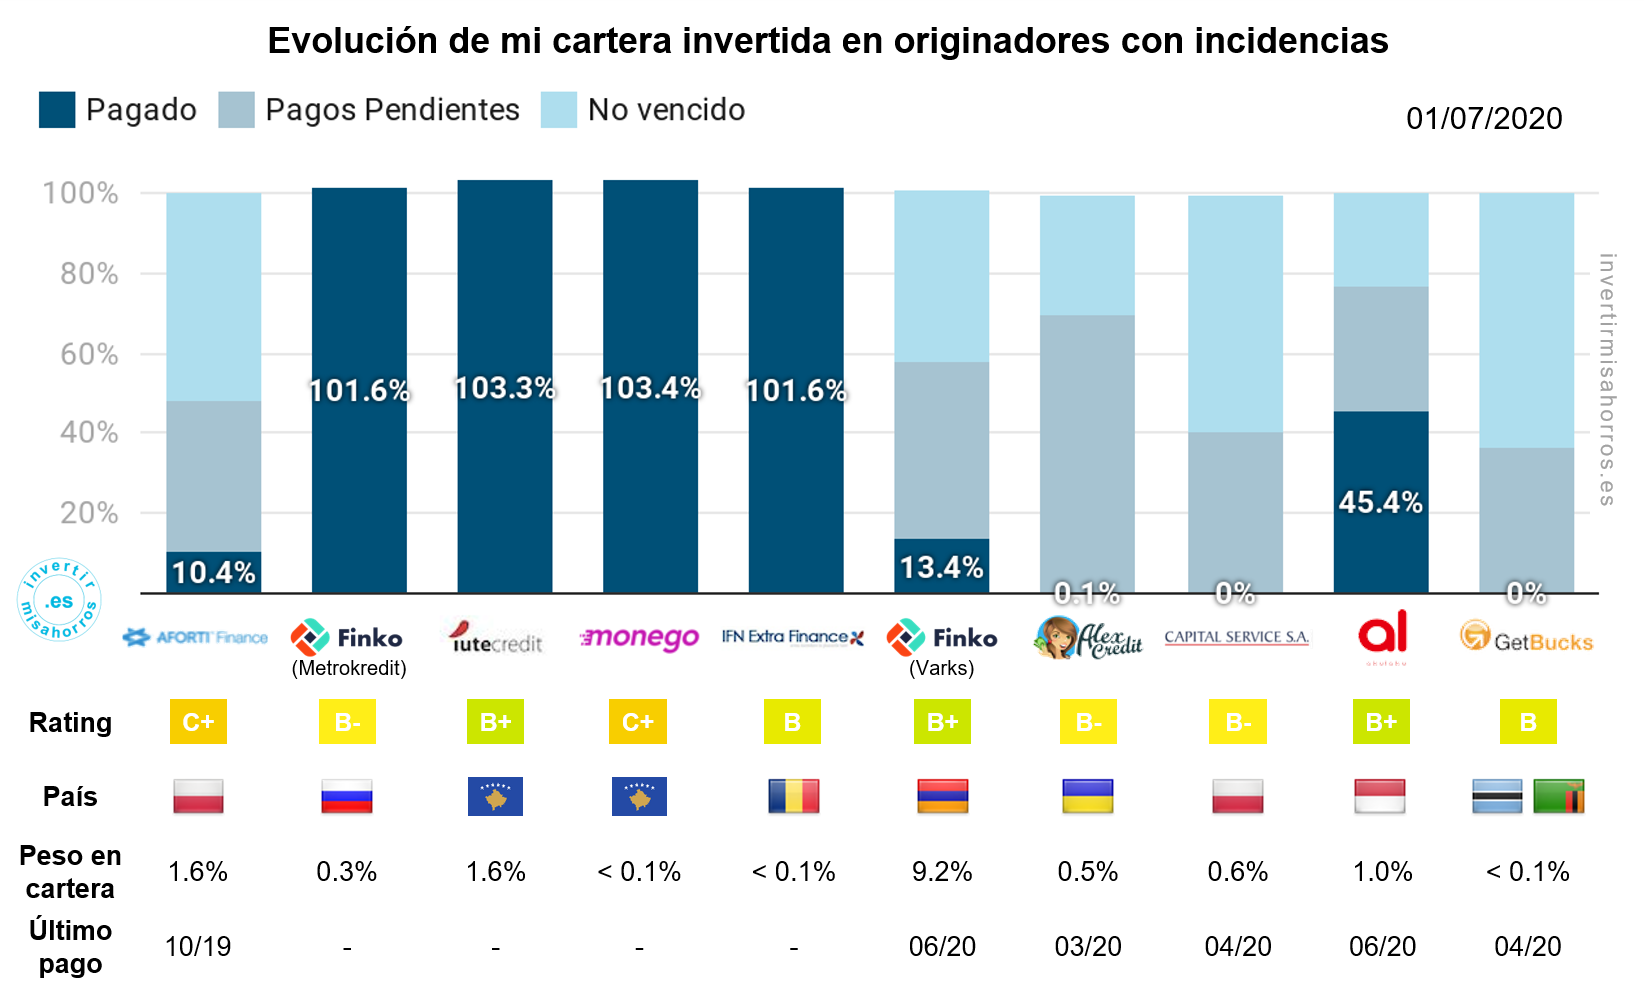 Evolución de mi cartera invertida en originadores con incidencias en mintos. 1 de julio de 2020